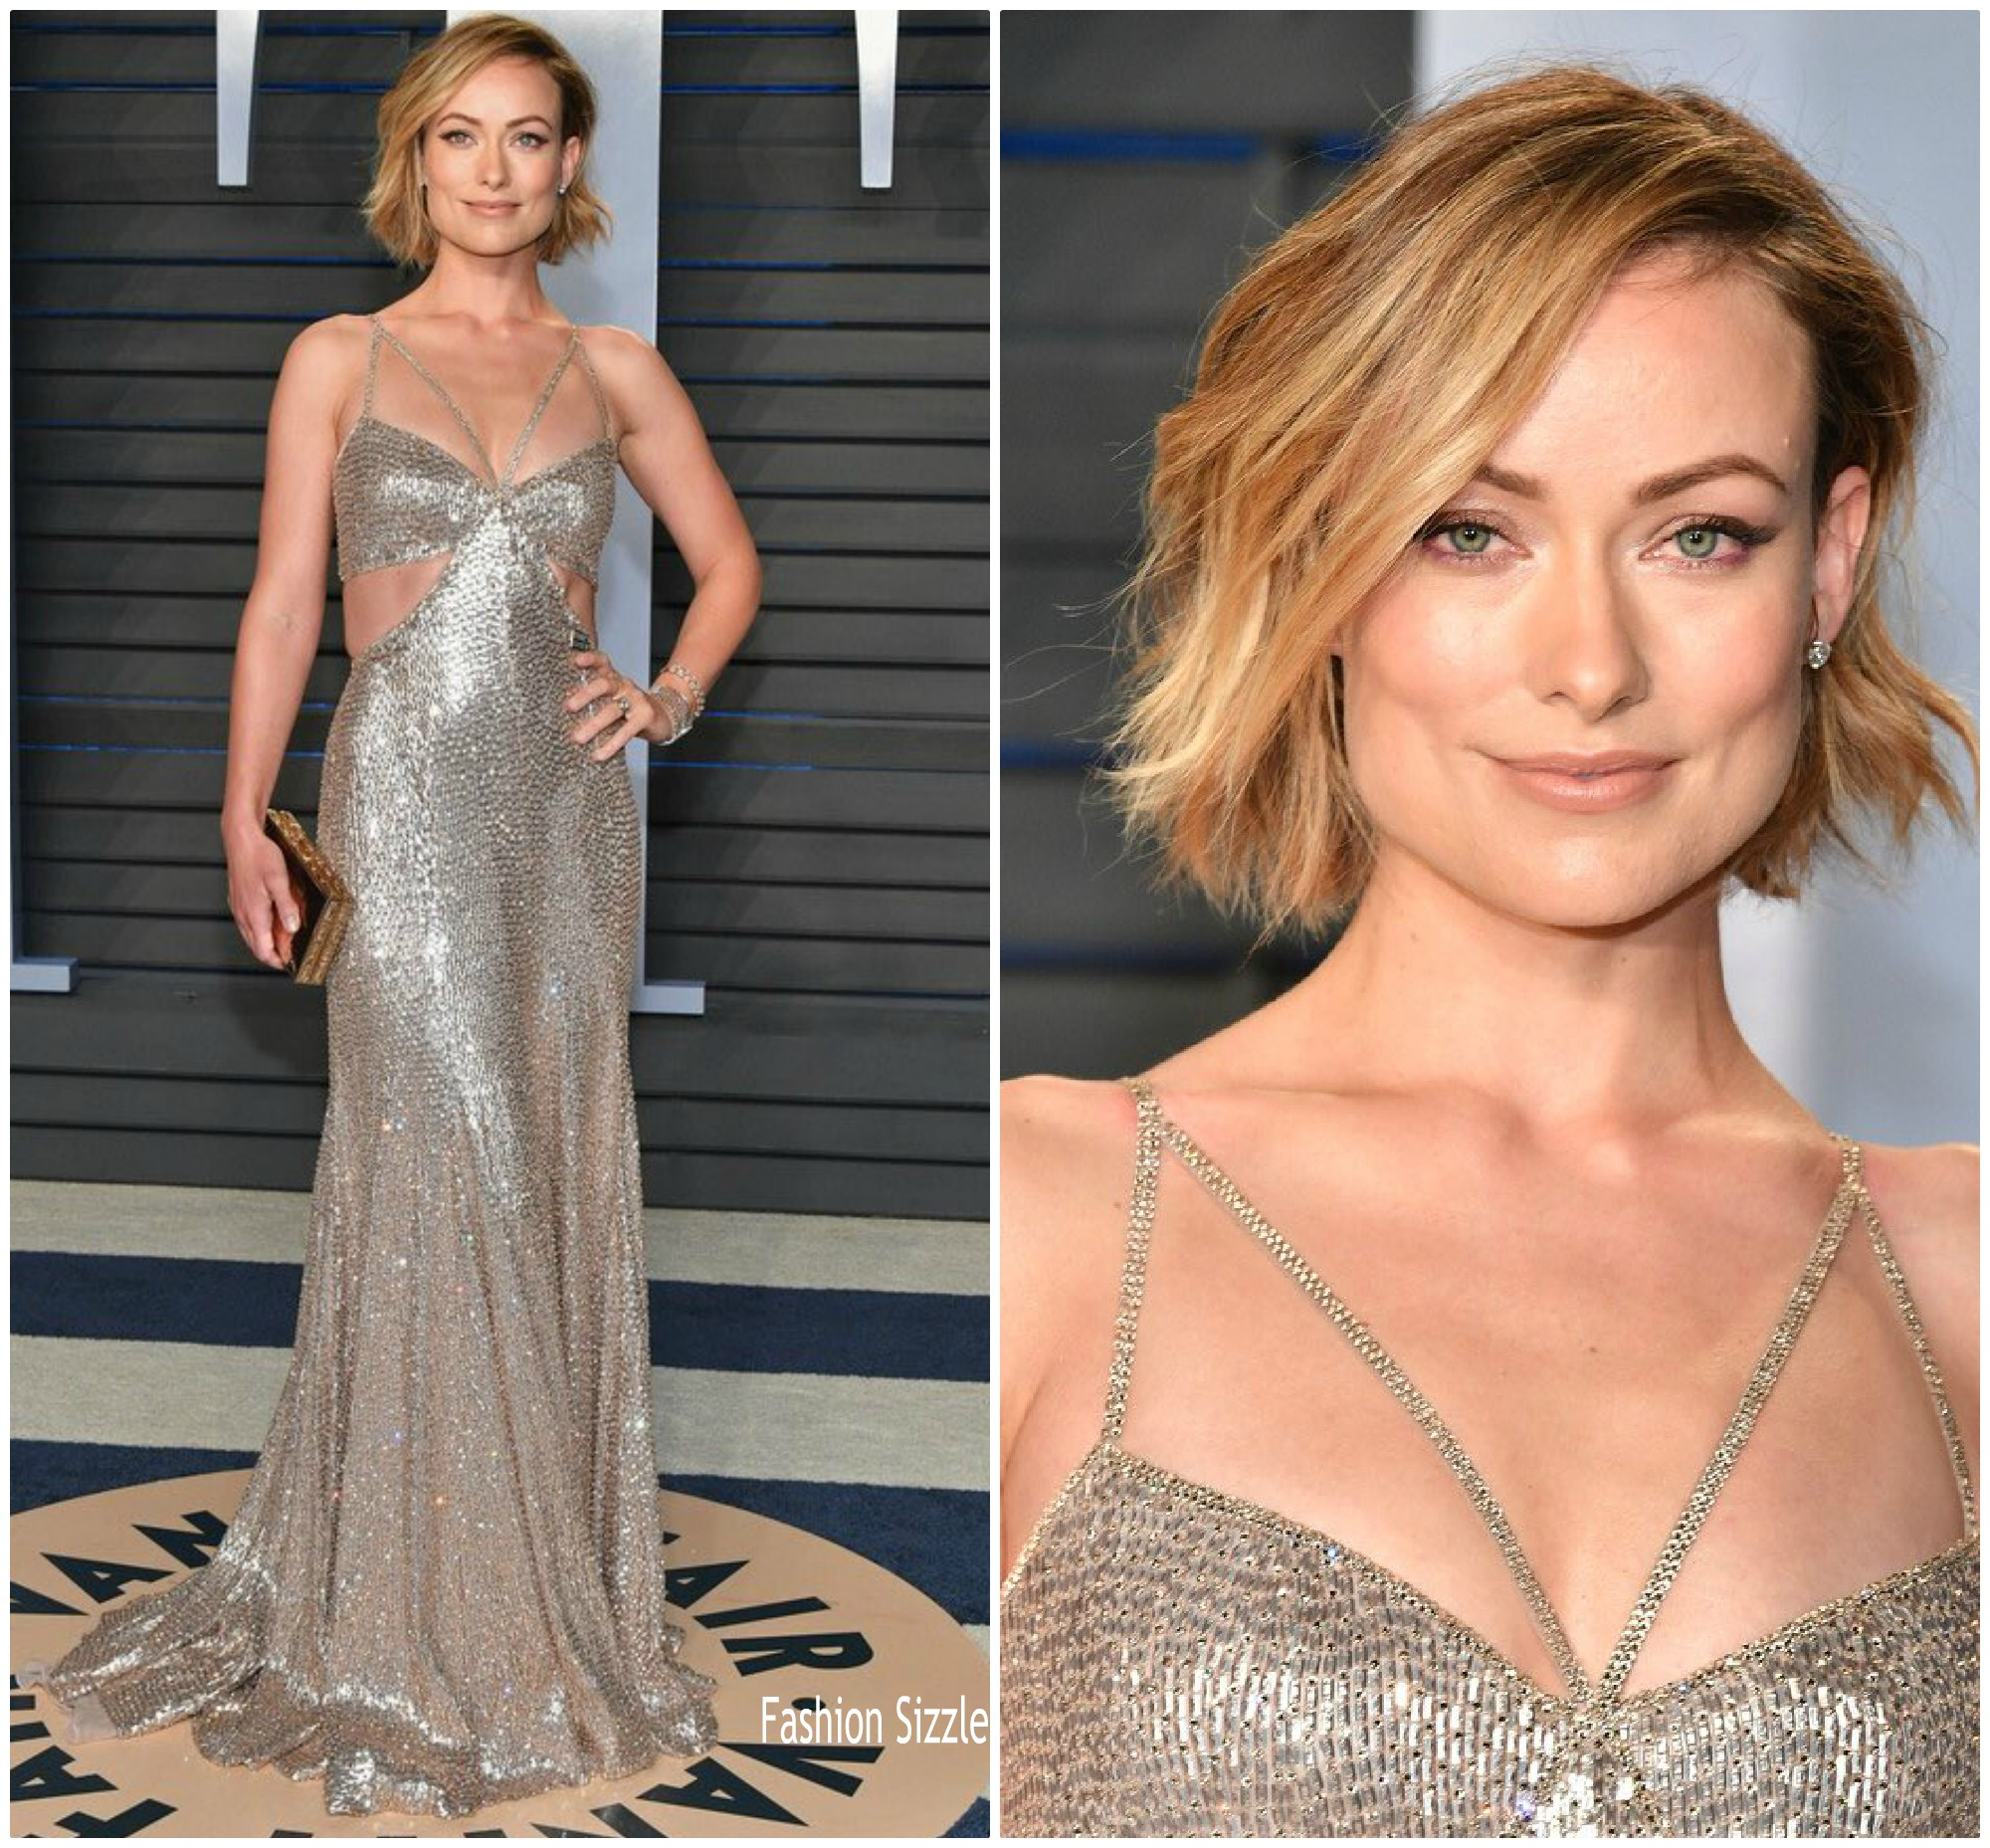 olivia-wilde-in-roberto-cavalli-couture-2018-vanity-fair-oscar-party